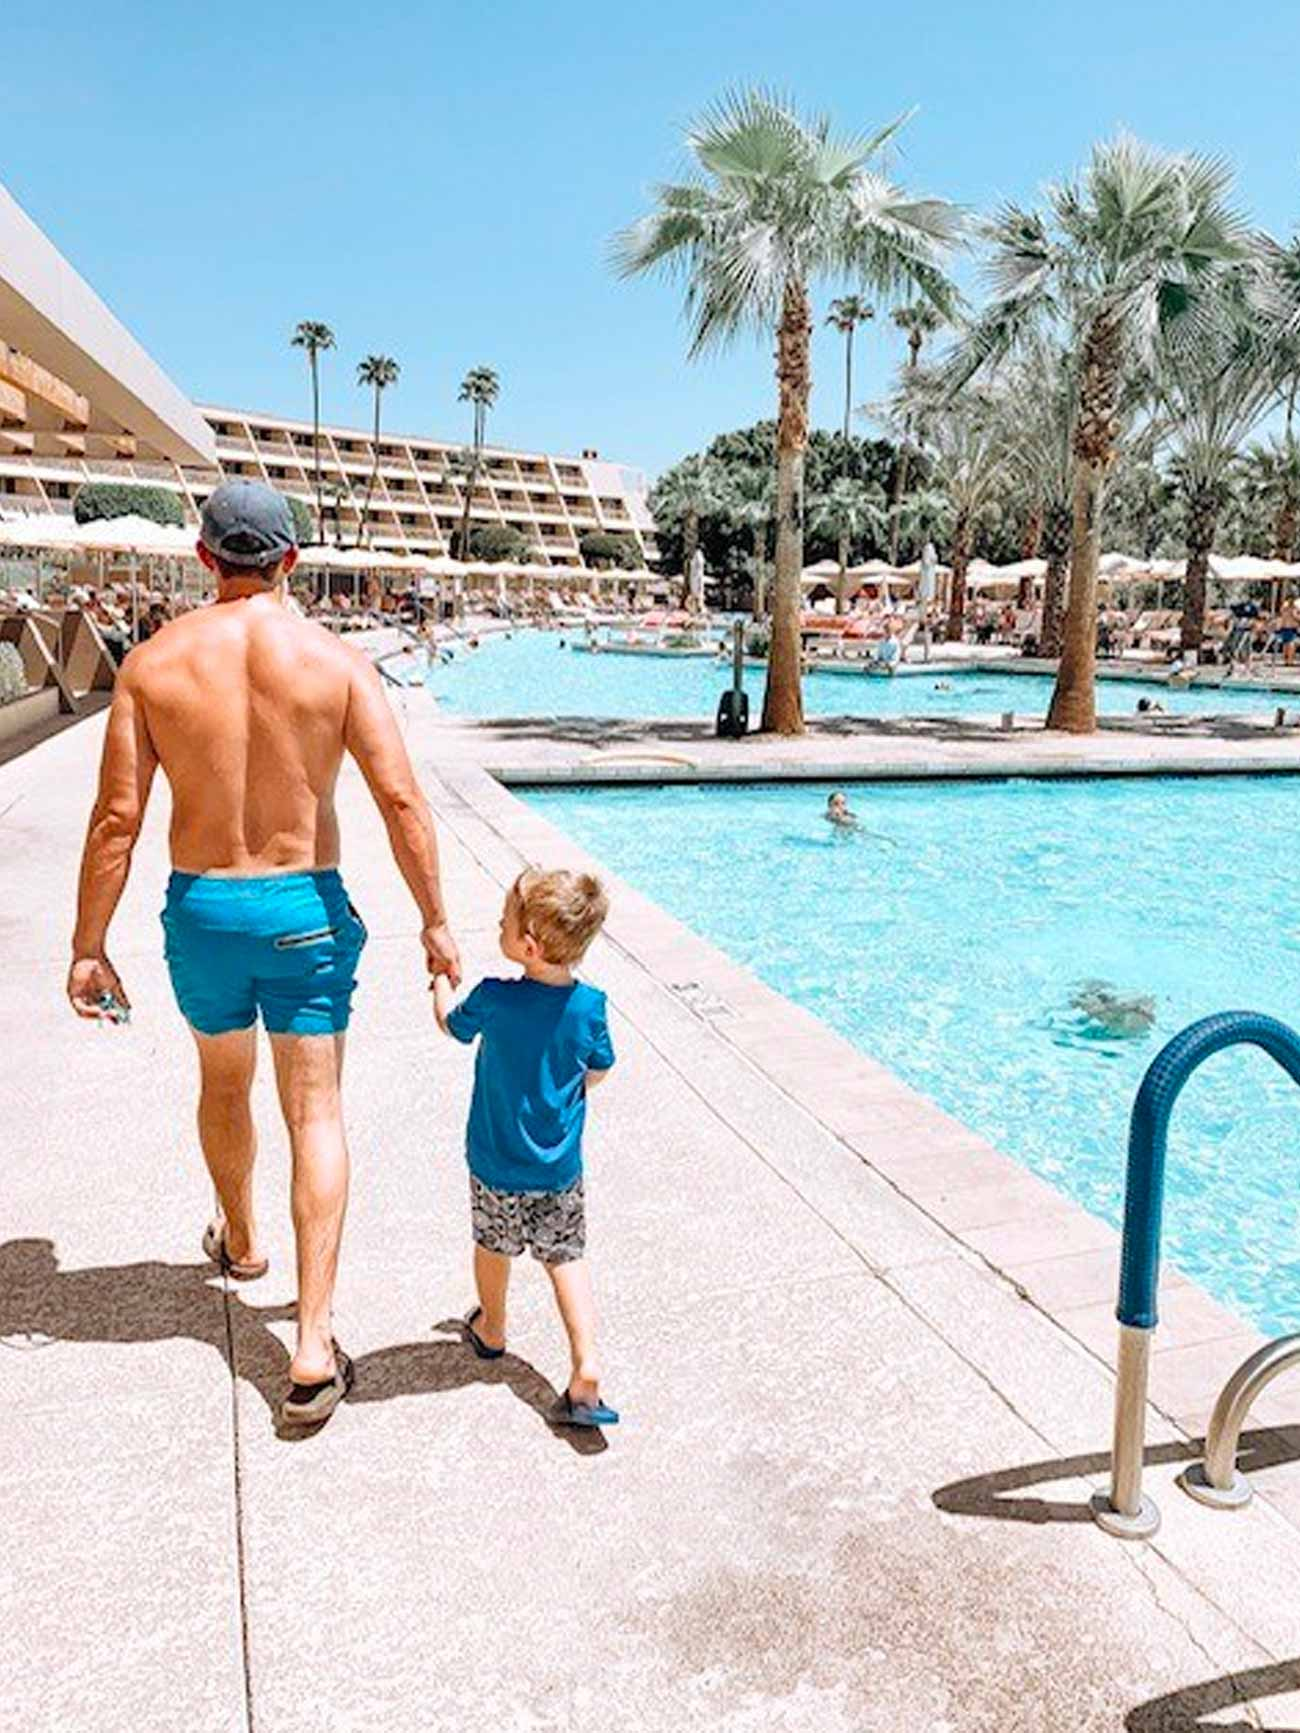 dad holds son's hand while walking near edge of outdoor pool